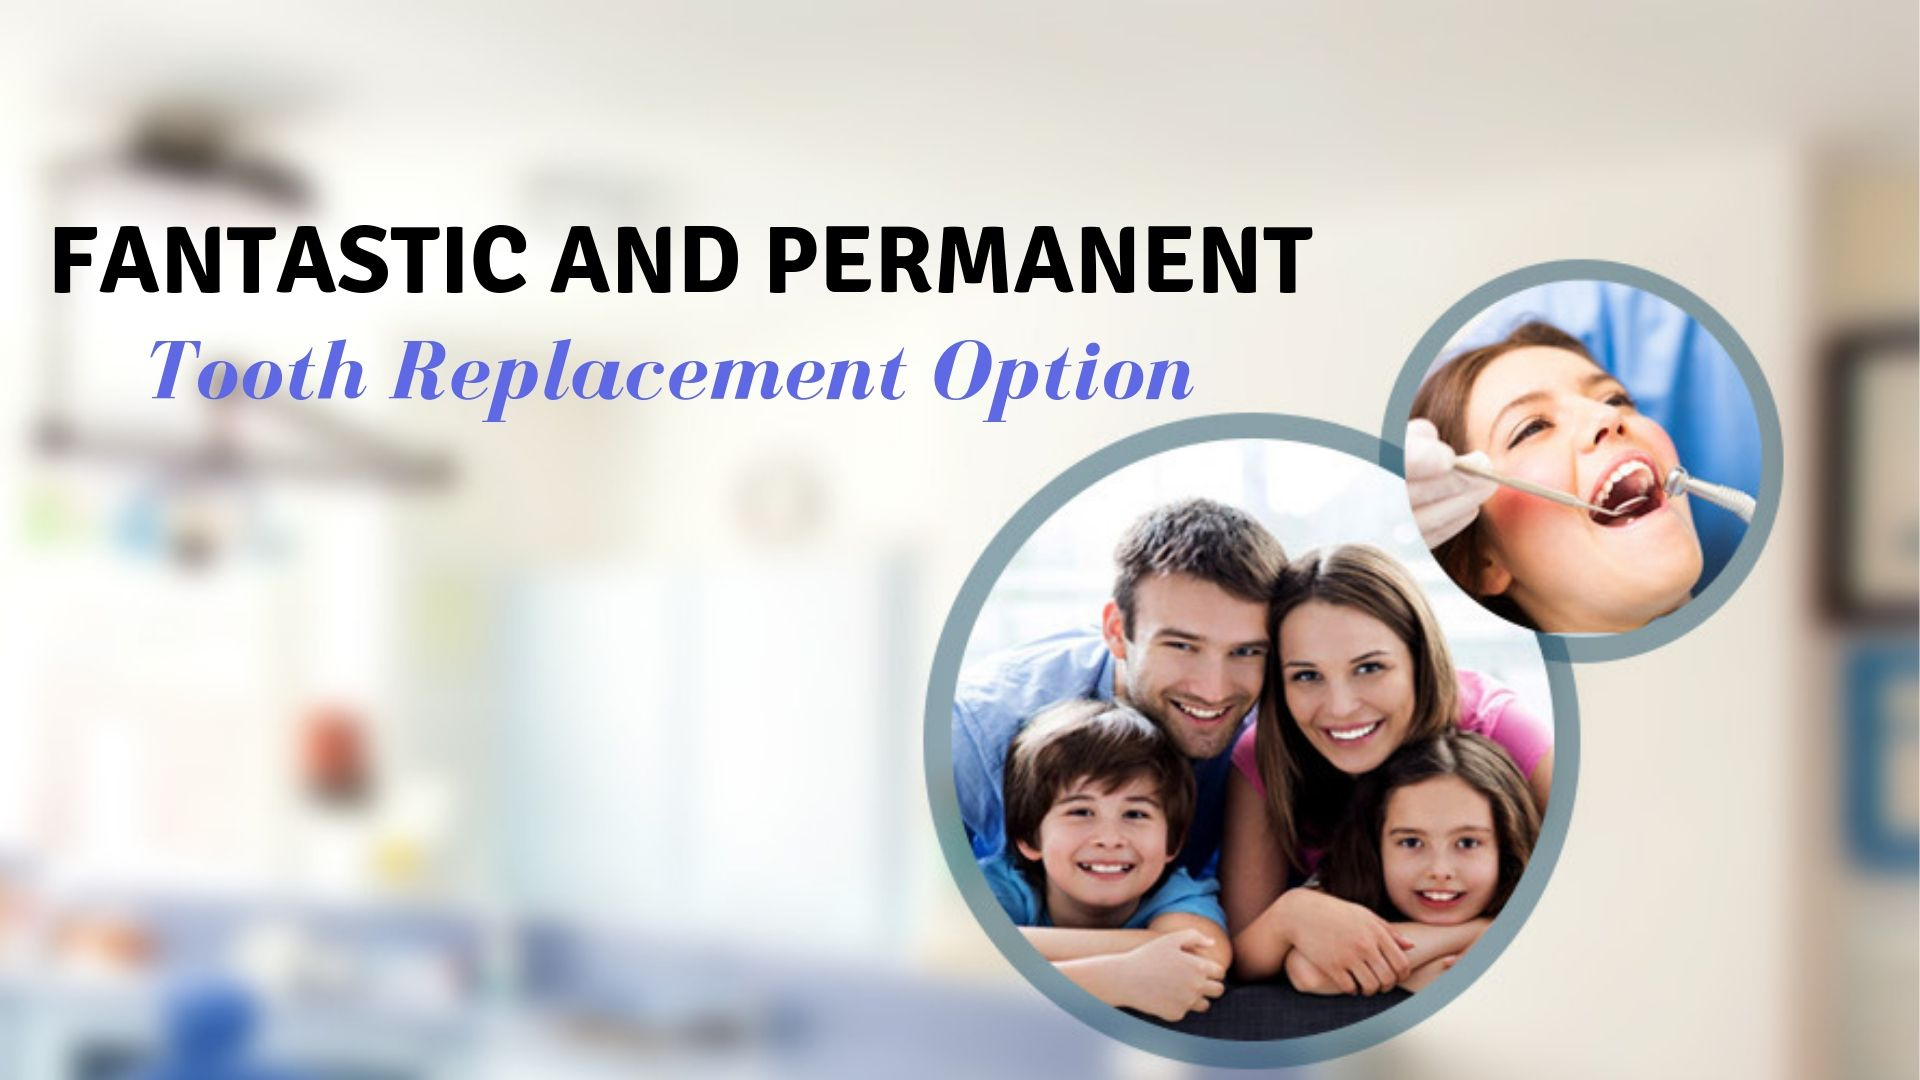 Dental implants are the closest you can get to healthy